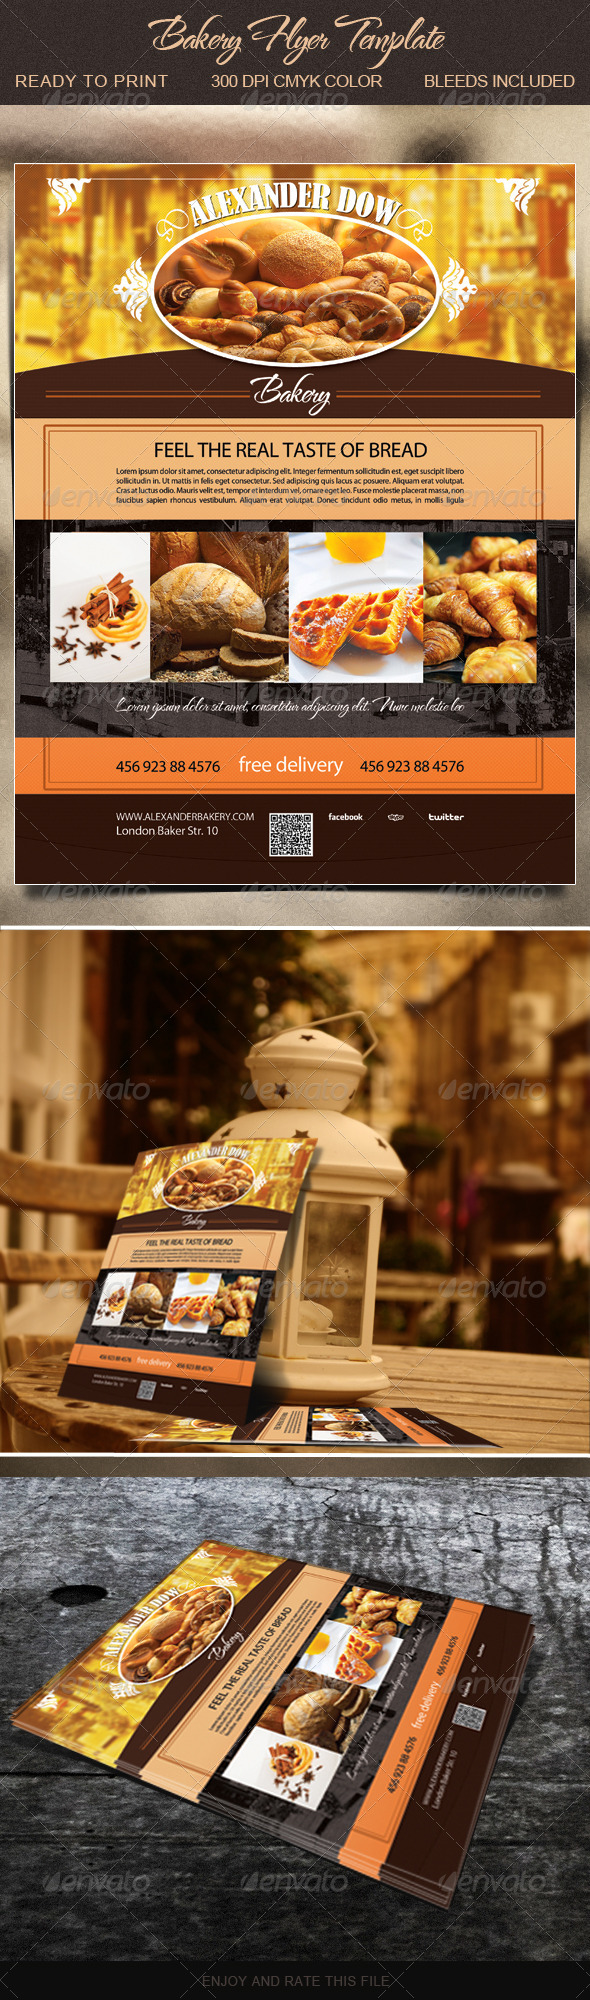 Bakery Flyer Insssrenterprisesco - Bakery brochure template free